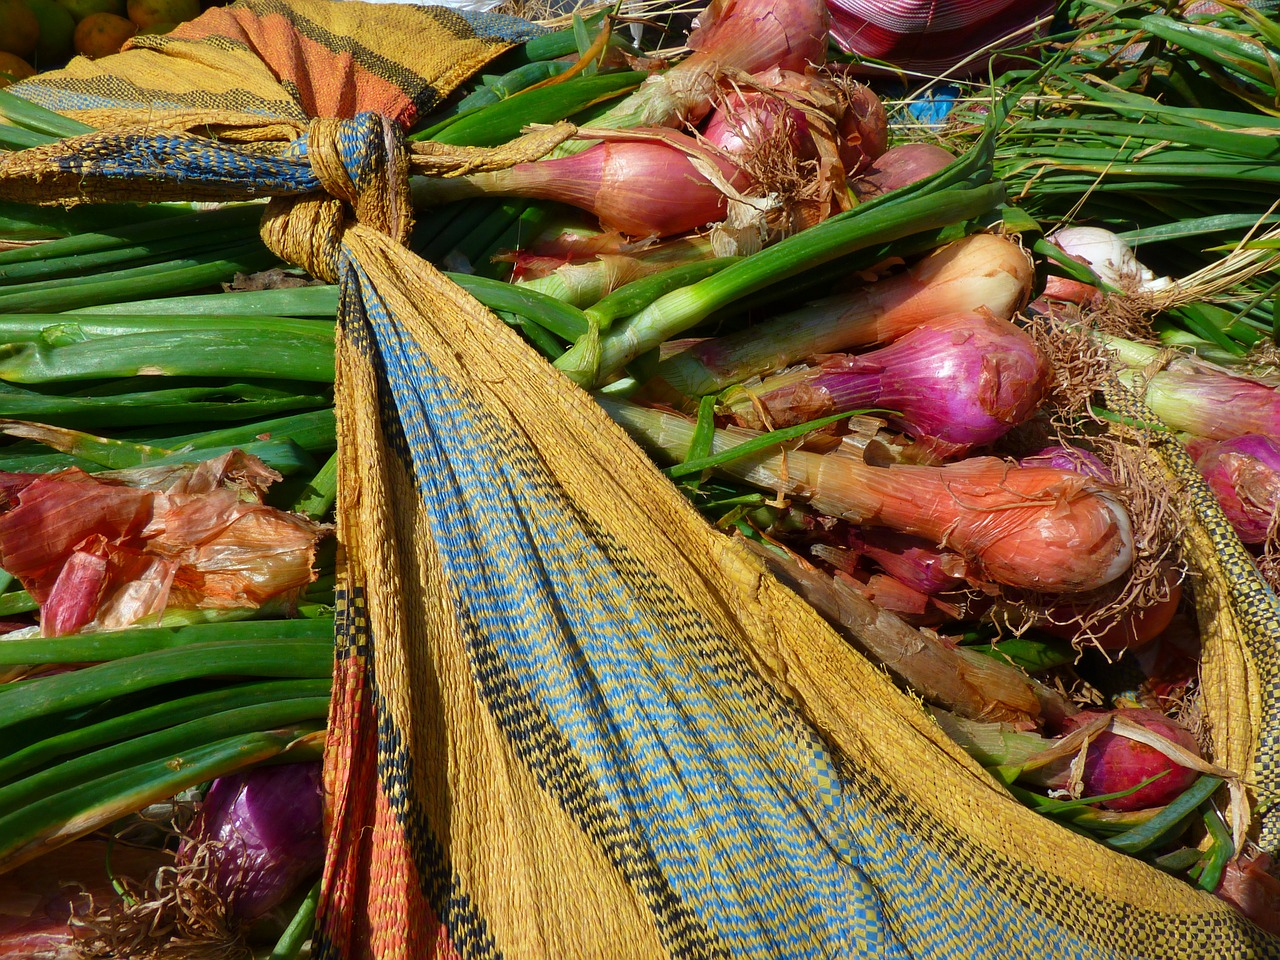 onion leek vegetables free photo